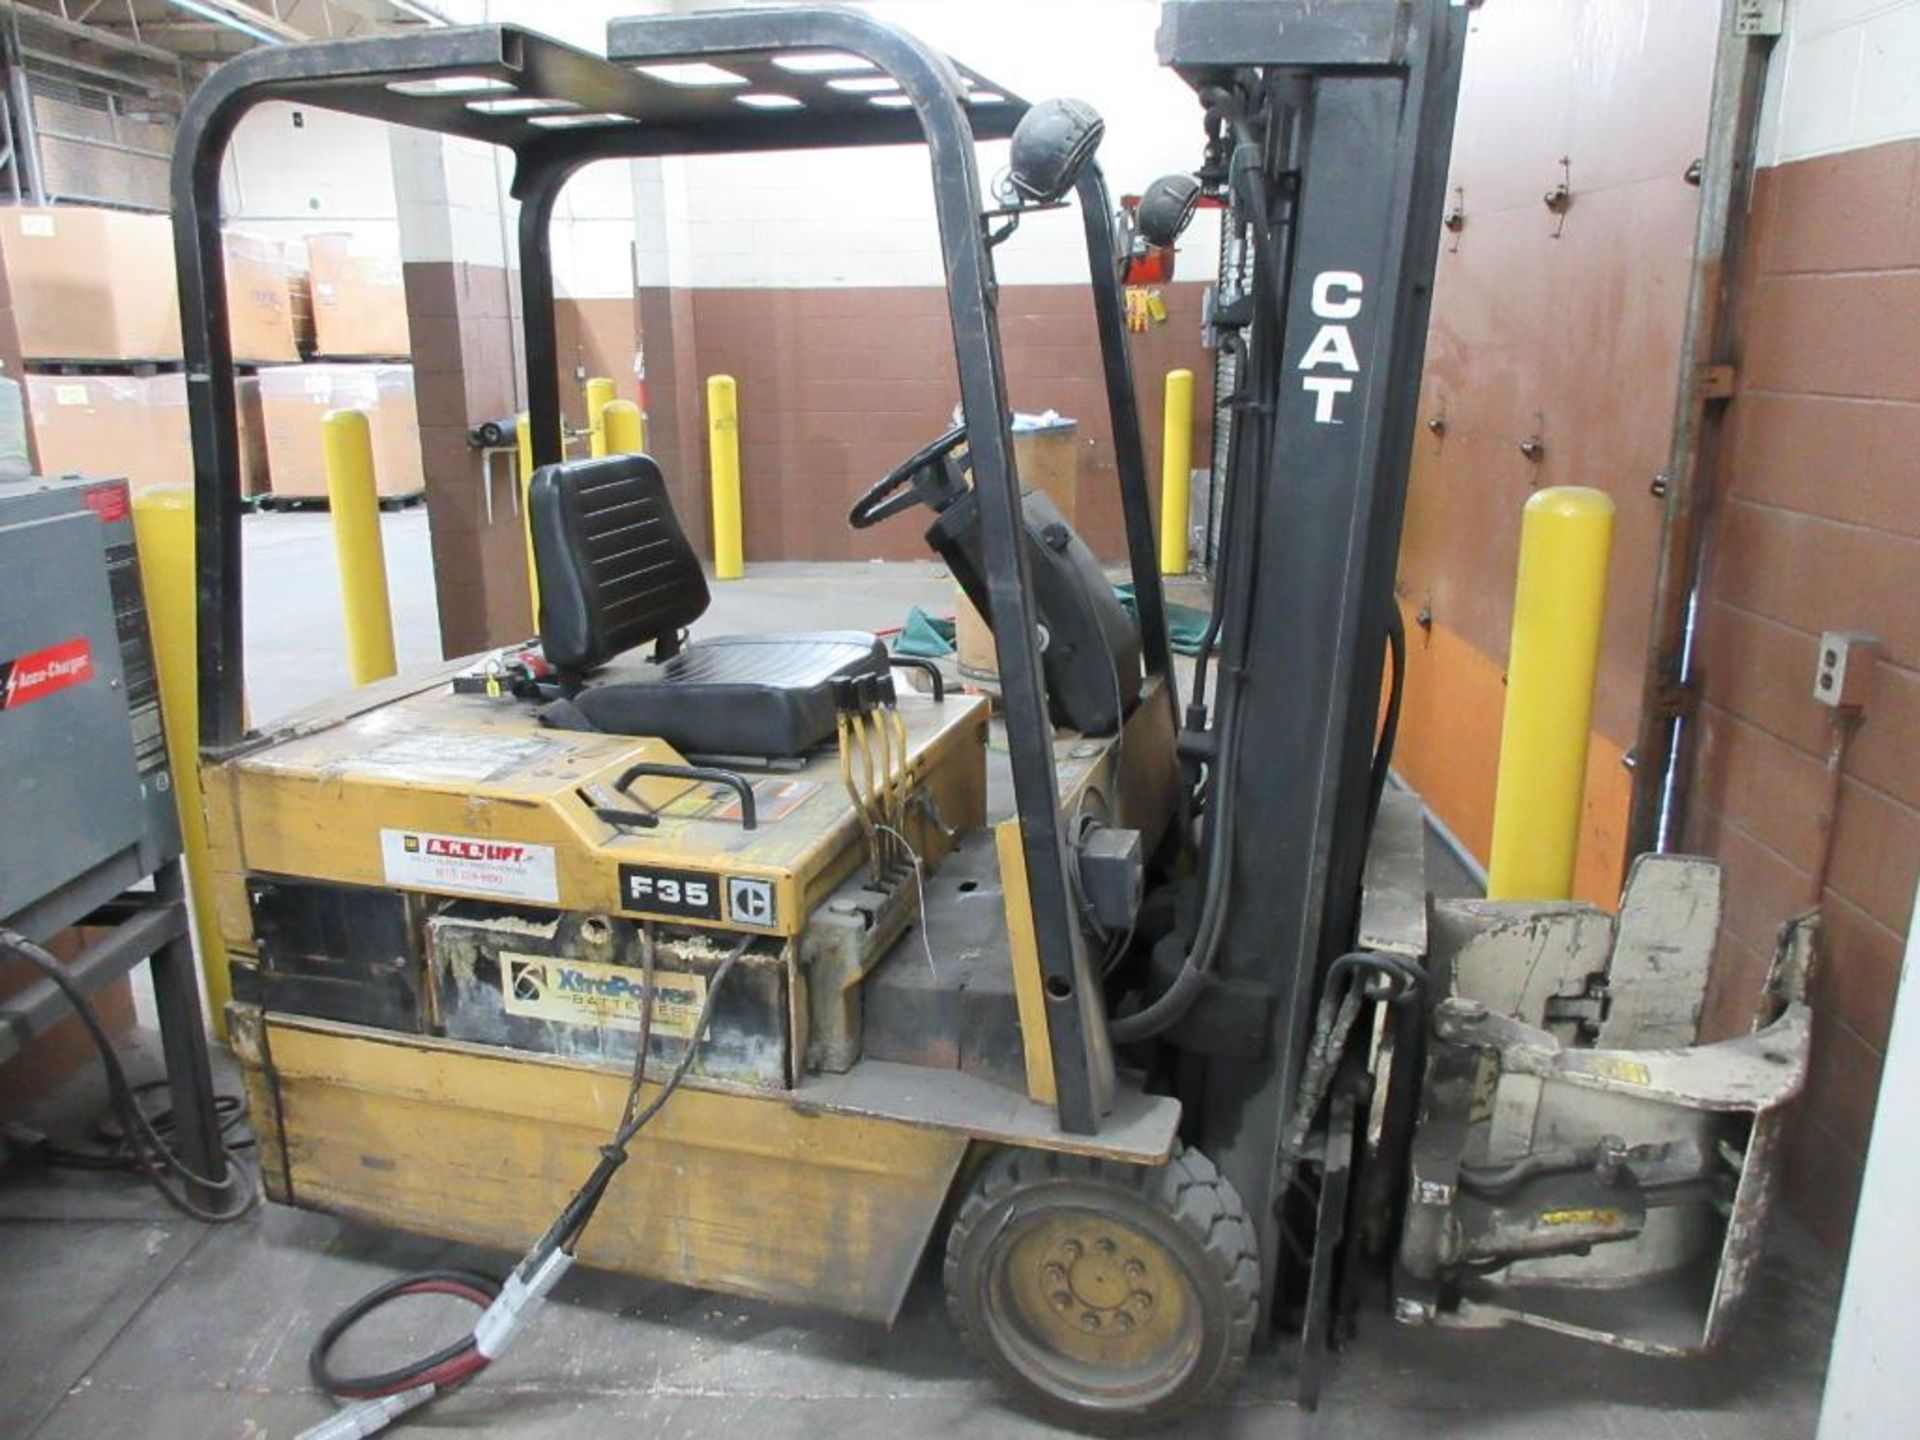 """Caterpillar 3,250 lb capacity, 3 wheel electric clamp forklift, model F35, 3 stage mast, 191"""" lift h - Image 6 of 10"""